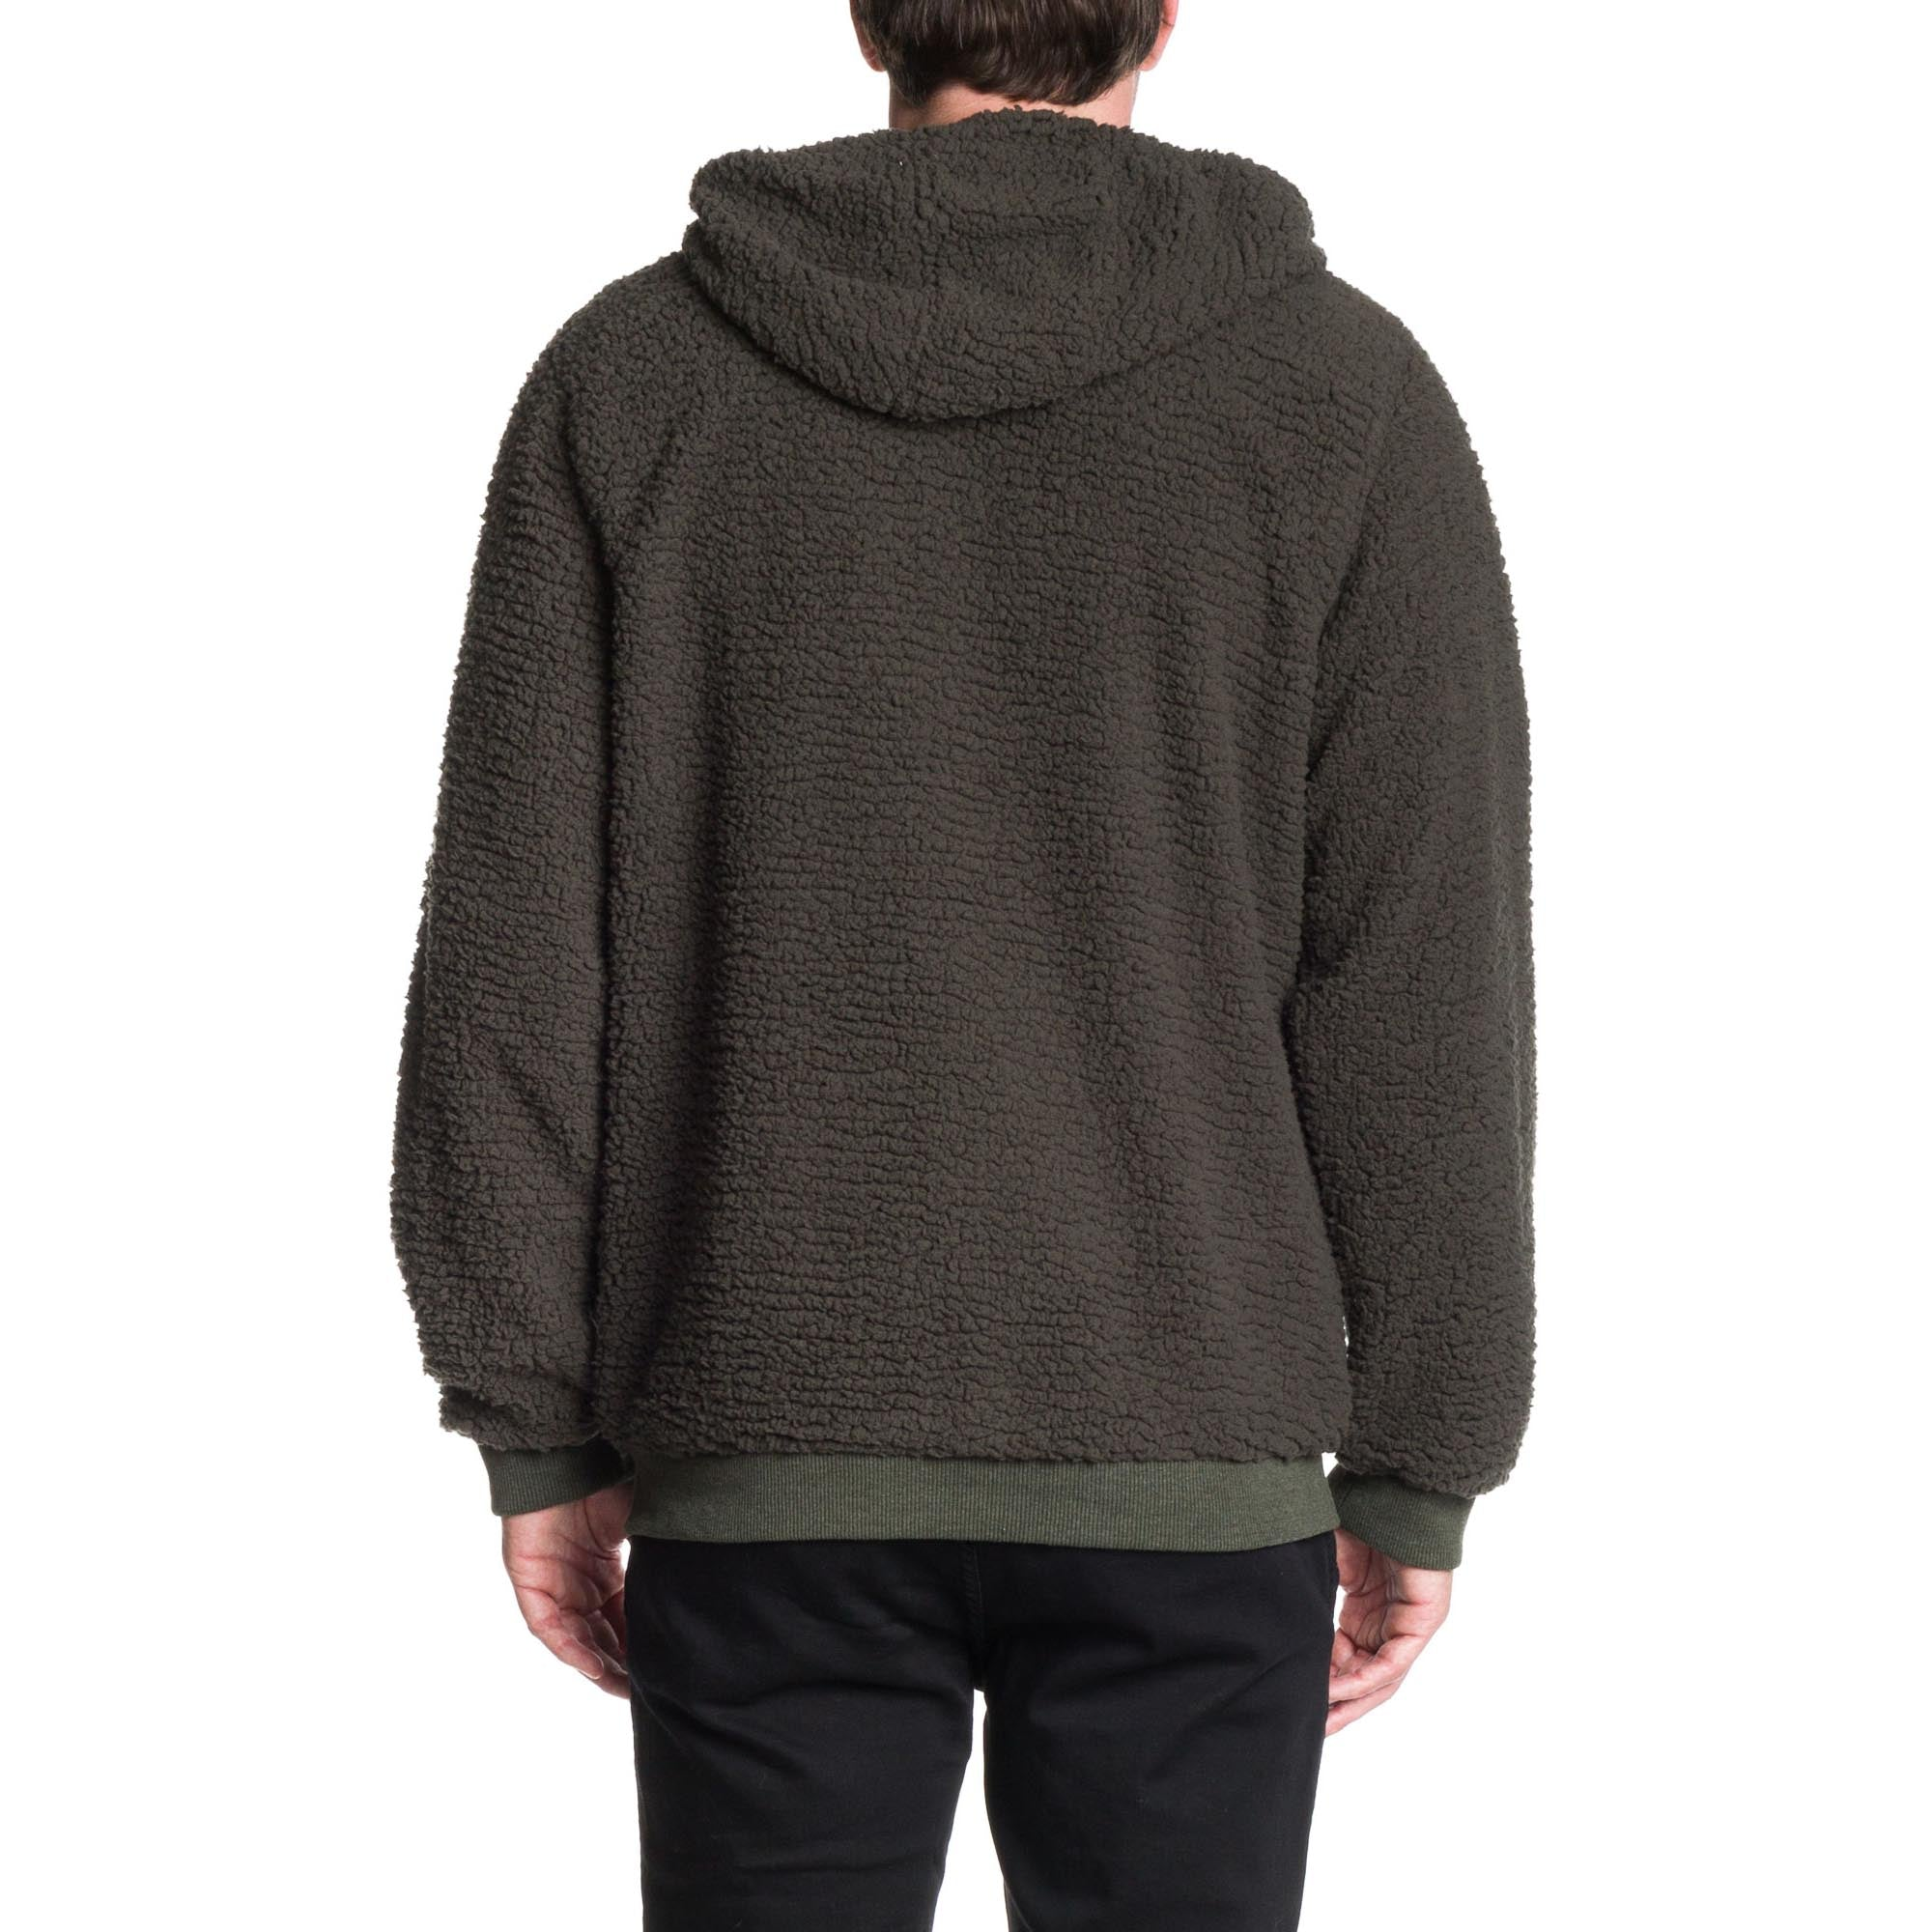 Alpaca Hoodie - Military Green - Ezekiel Clothing